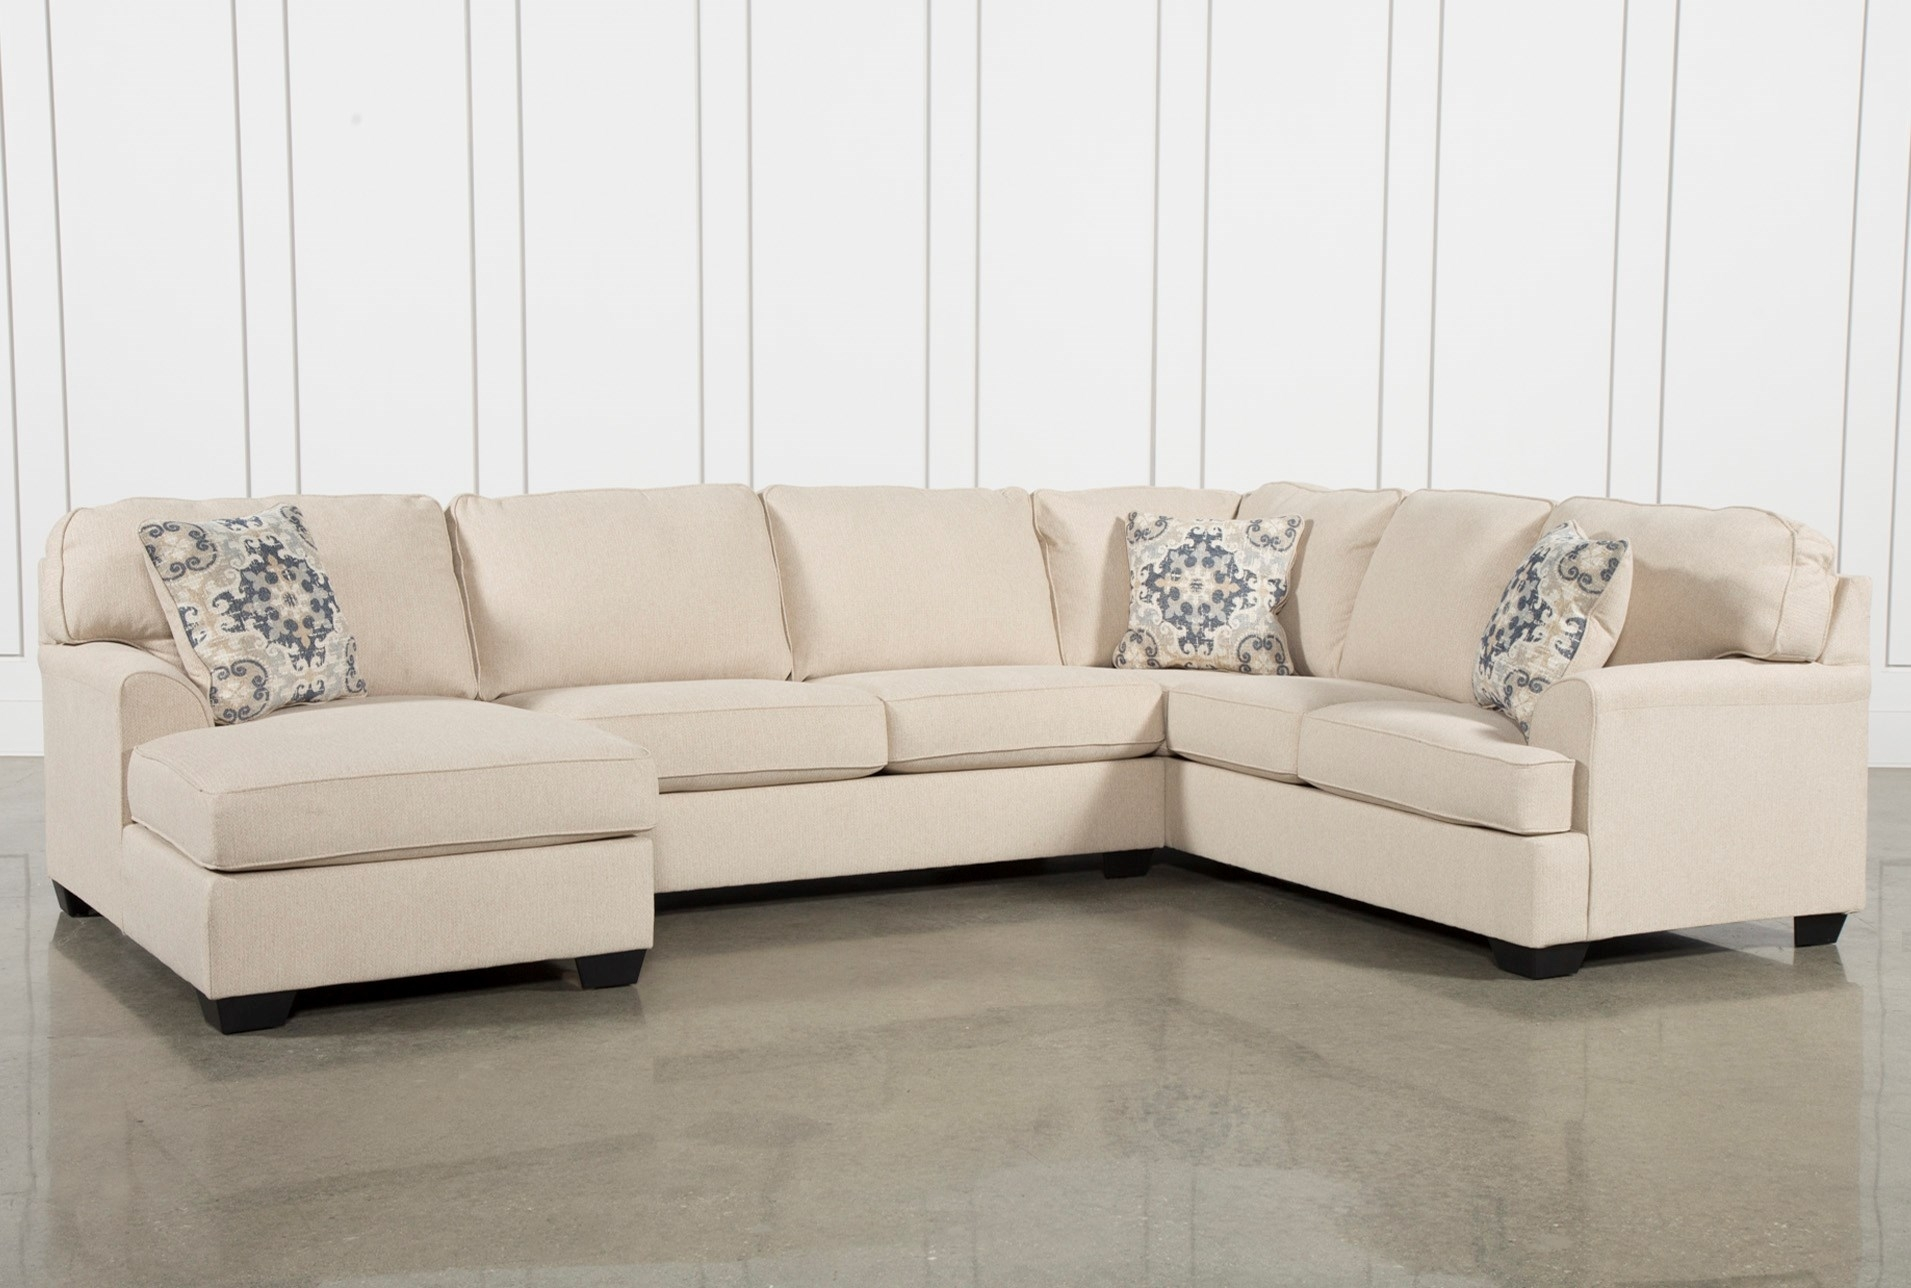 Laf Sectional - Acwc with Avery 2 Piece Sectionals With Laf Armless Chaise (Image 15 of 30)